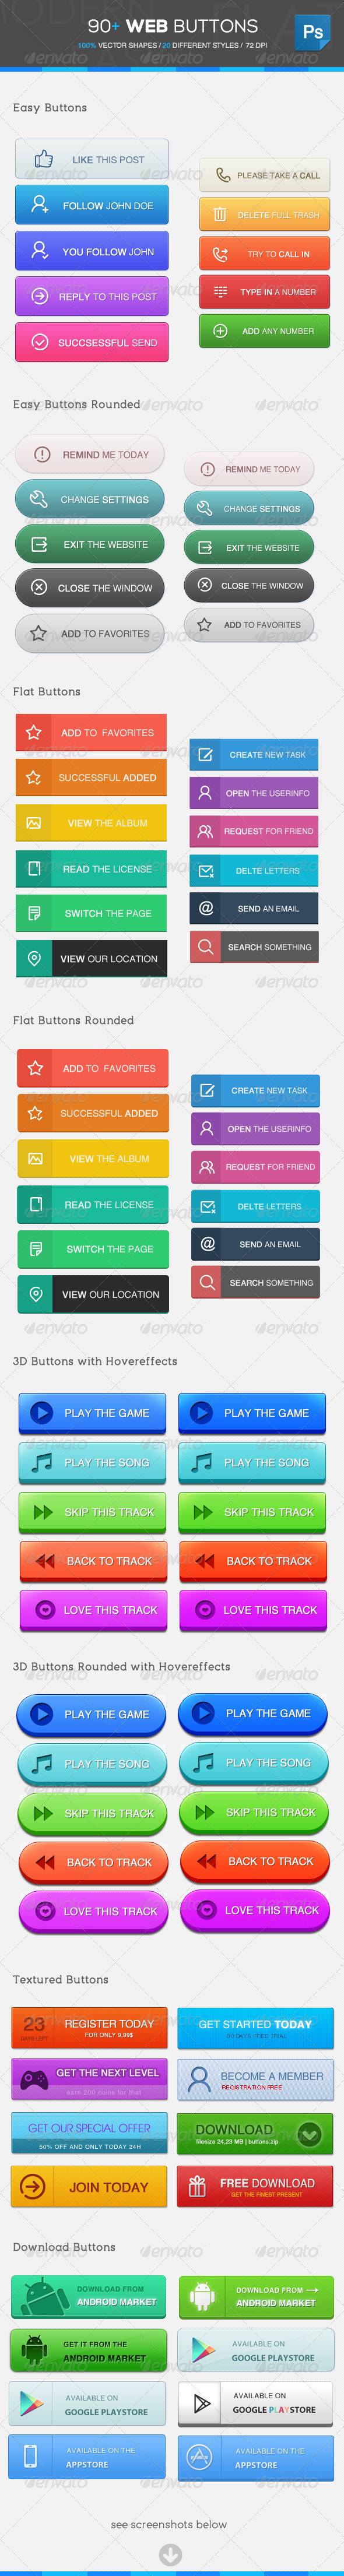 GraphicRiver 90& Web Buttons 4823561